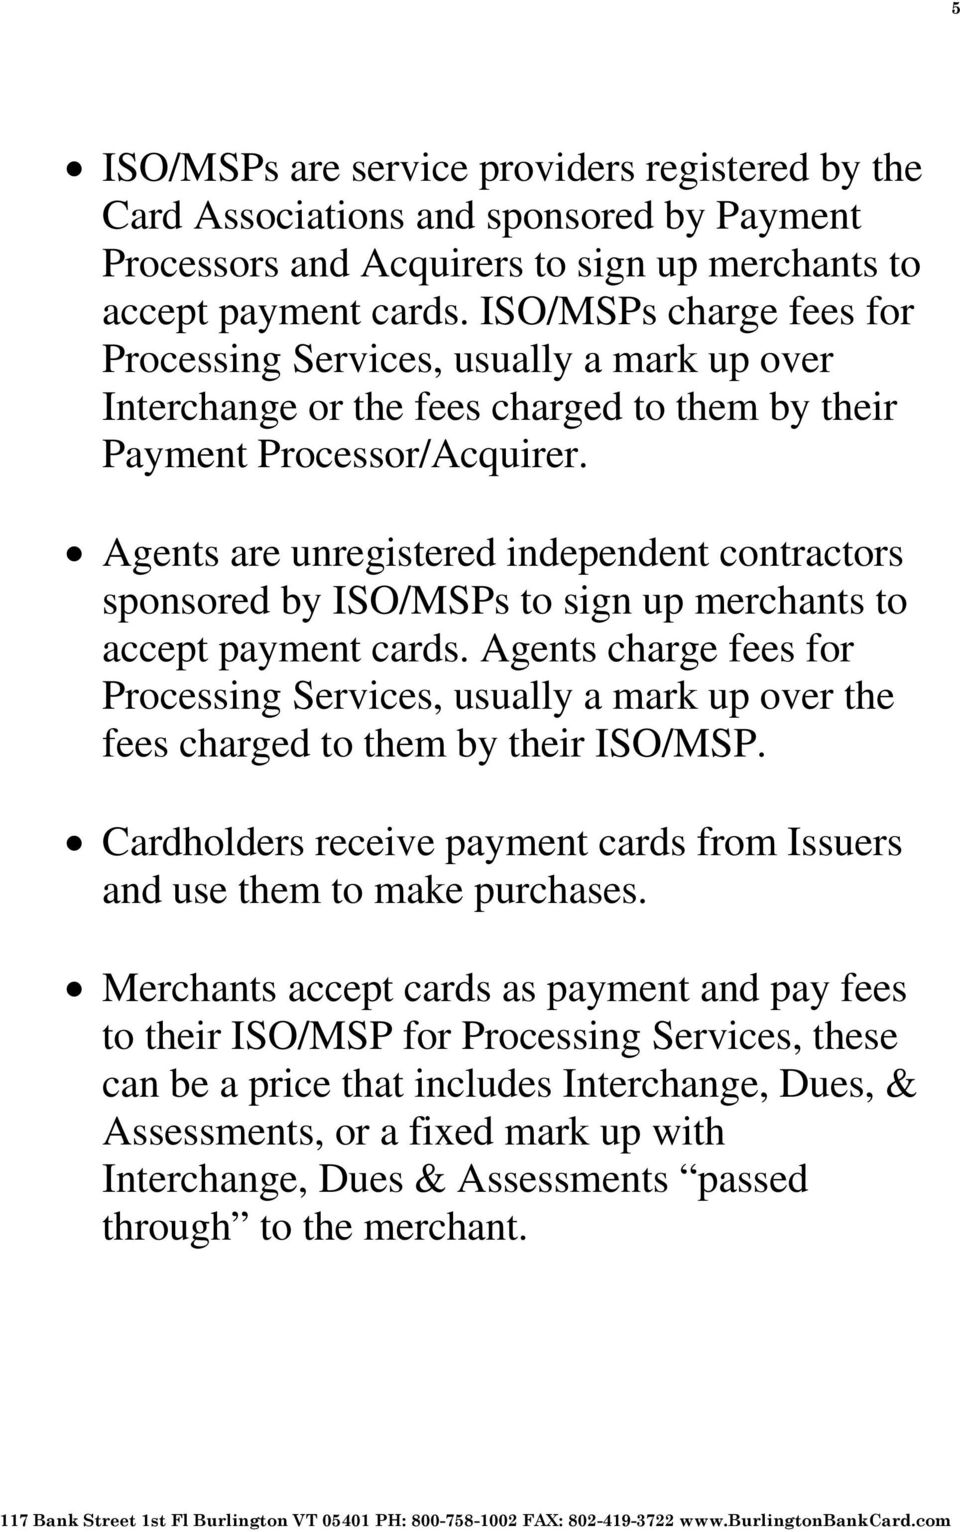 Agents are unregistered independent contractors sponsored by ISO/MSPs to sign up merchants to accept payment cards.